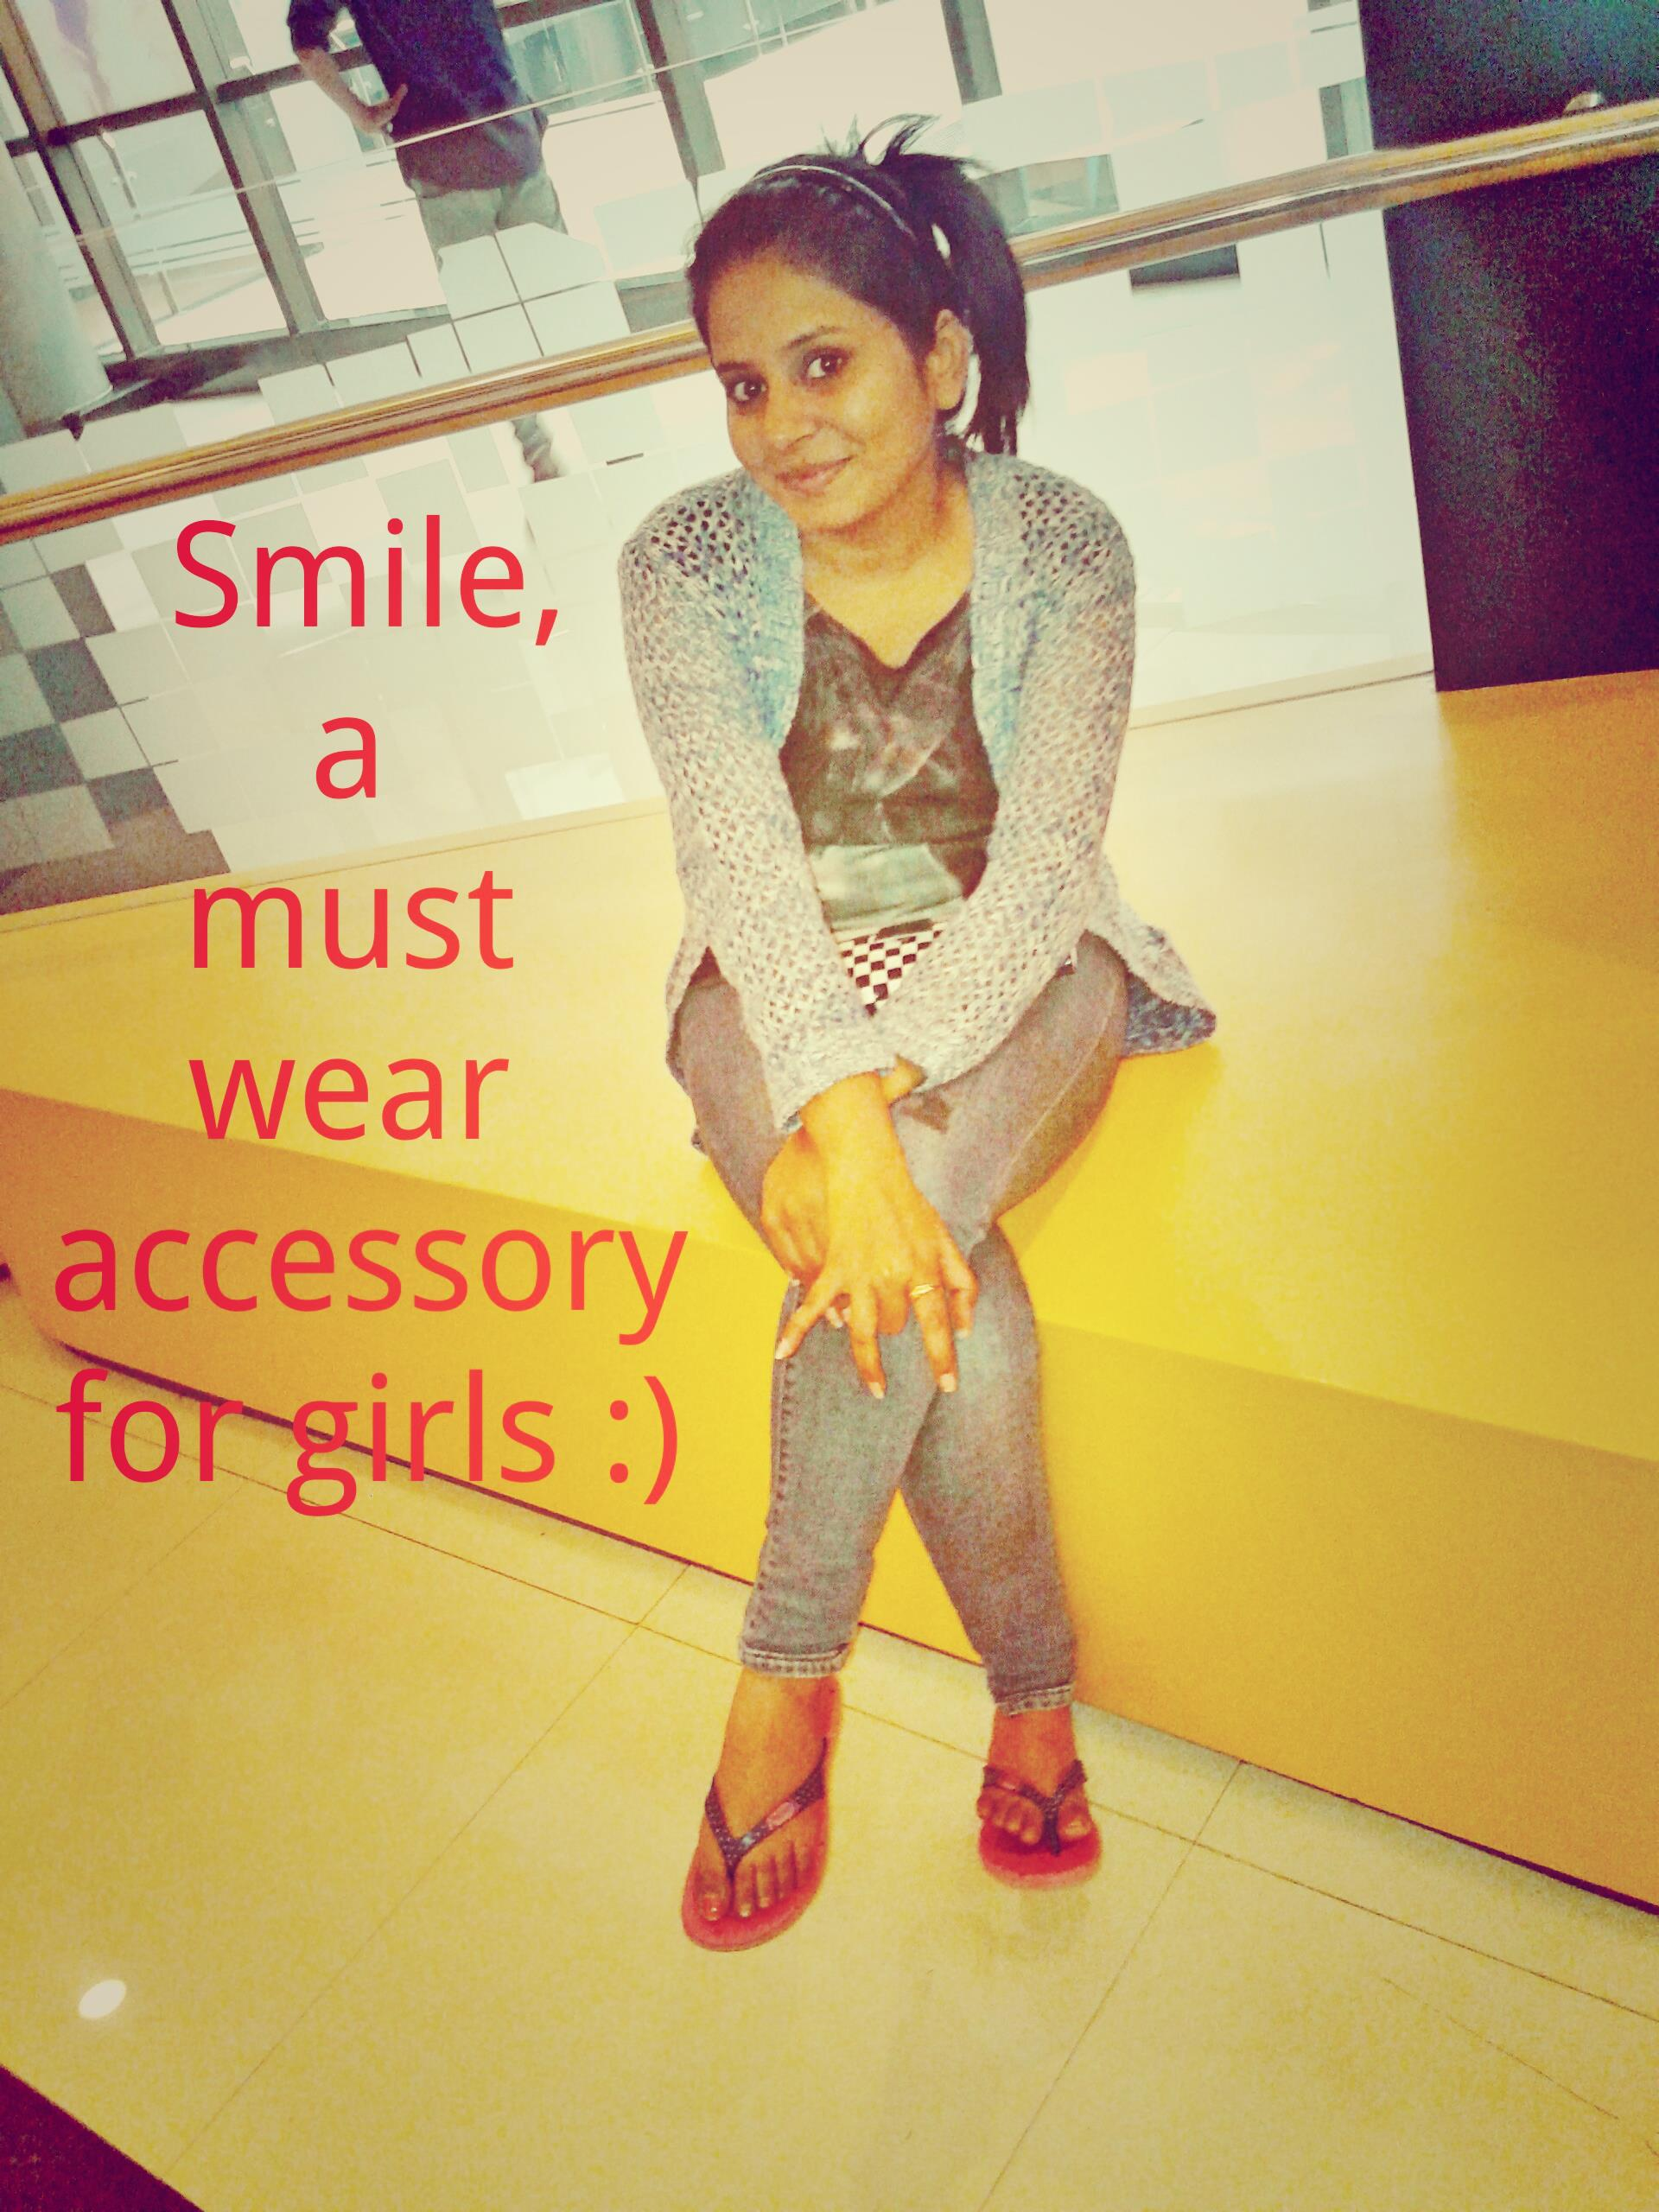 Smile, Must Wear Accessory for girls, Quotes tumblr